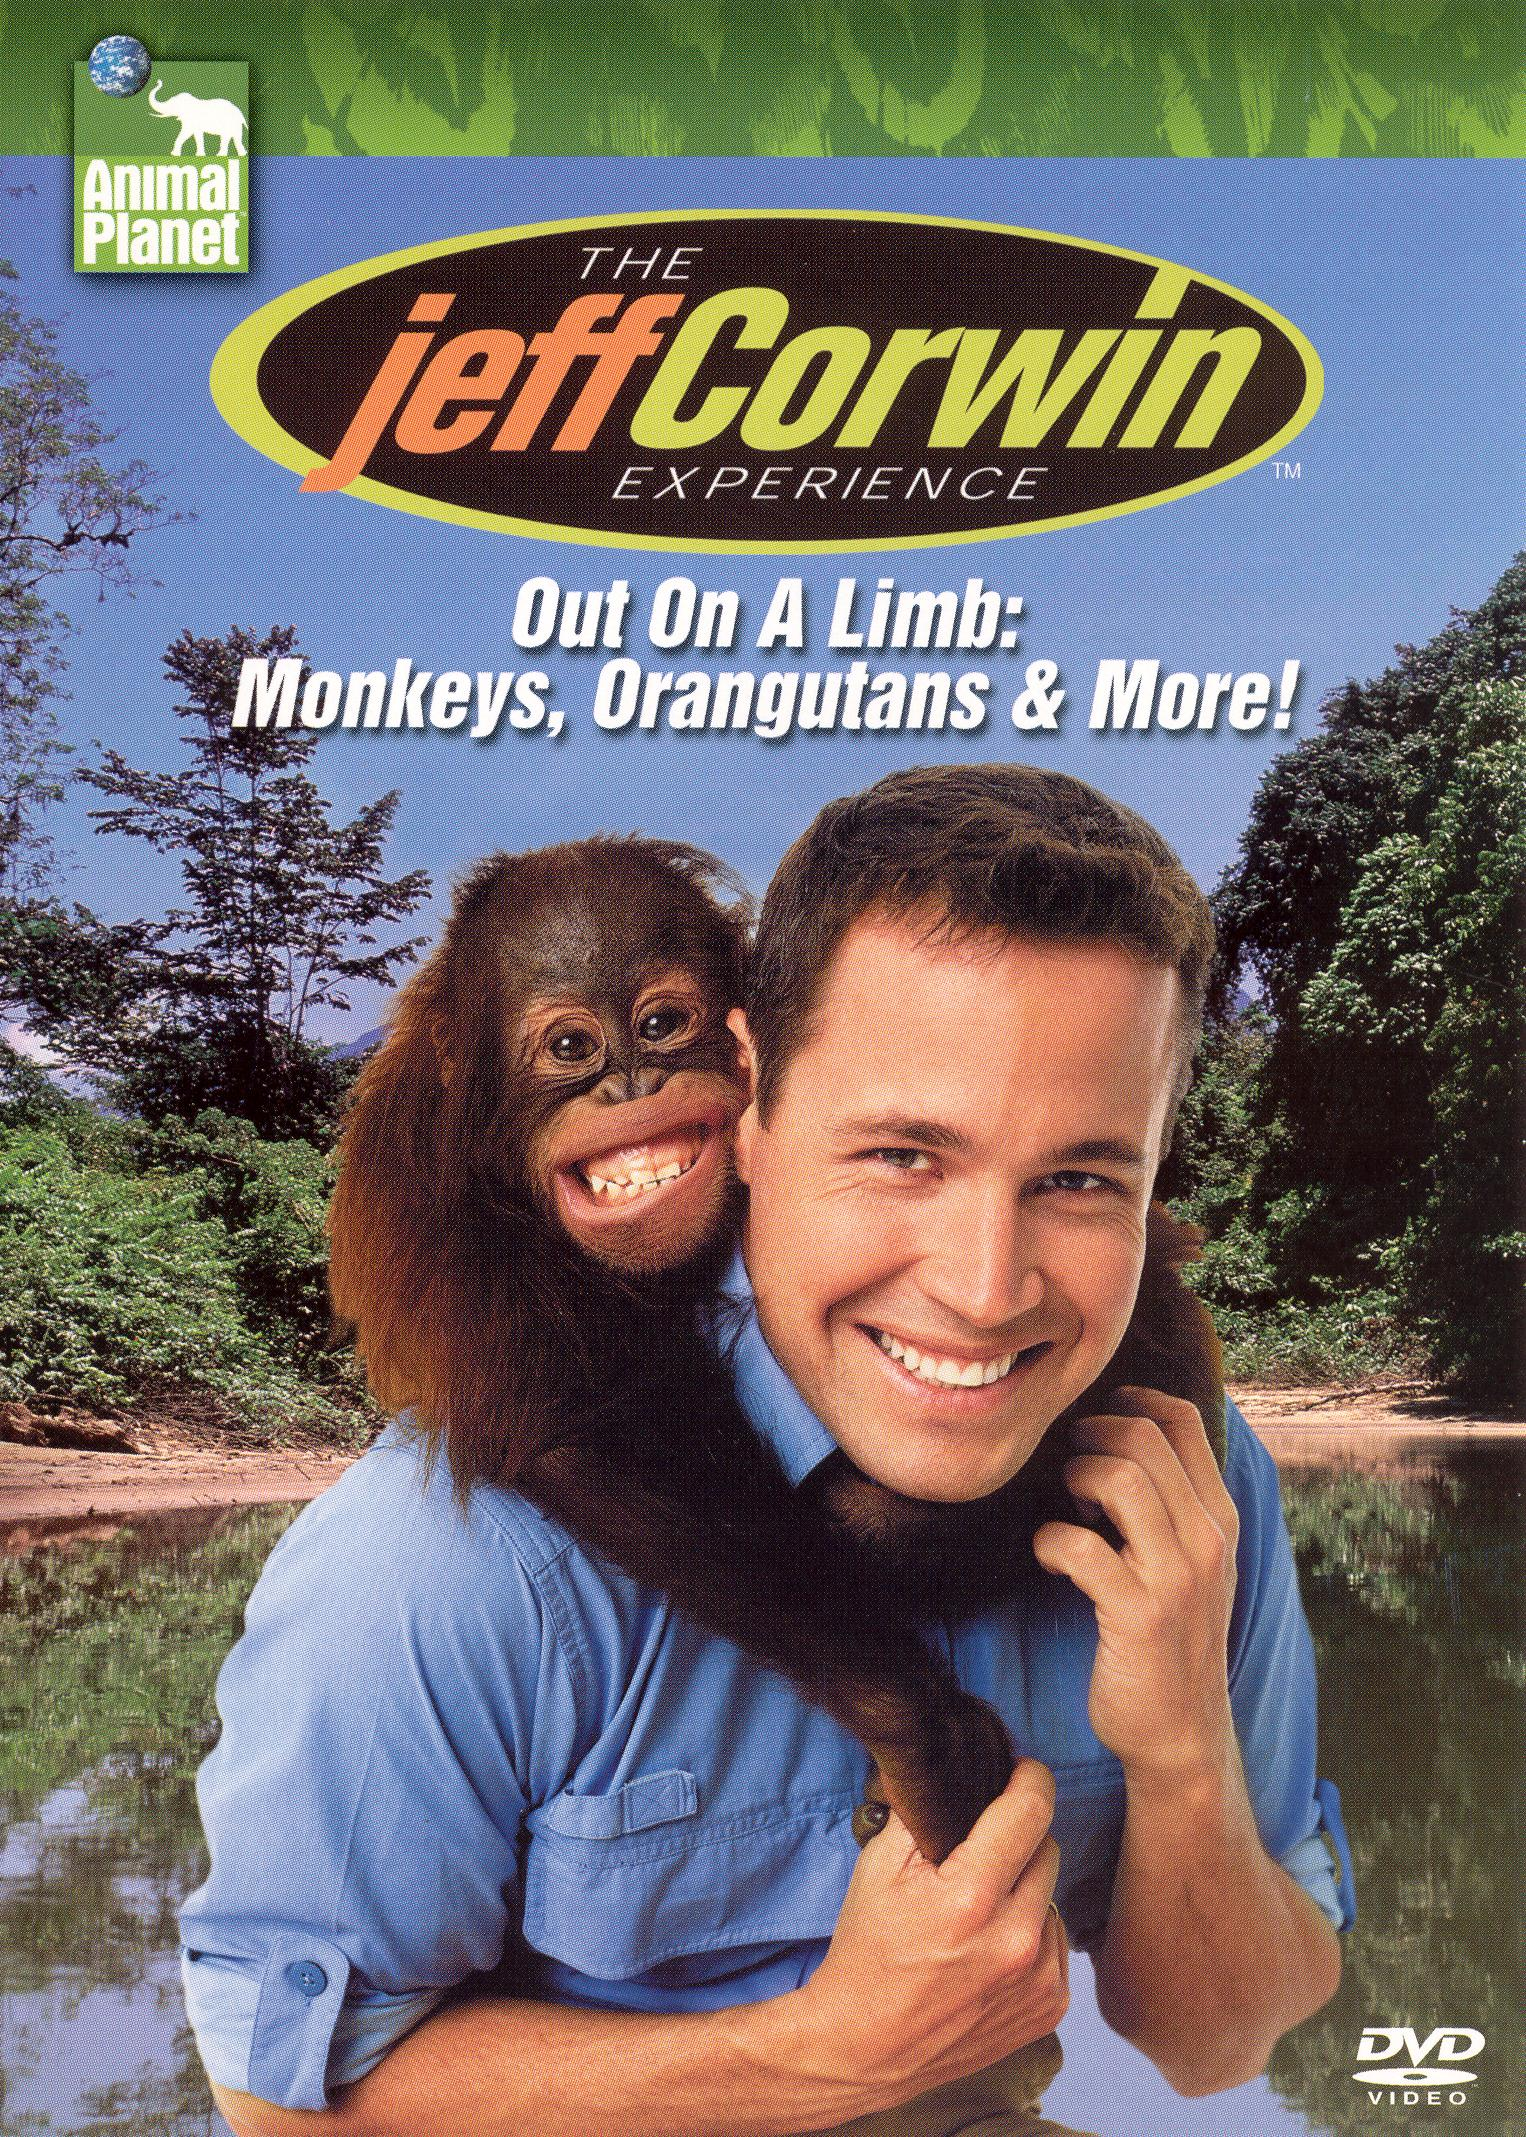 The Jeff Corwin Experience: Out on a Limb